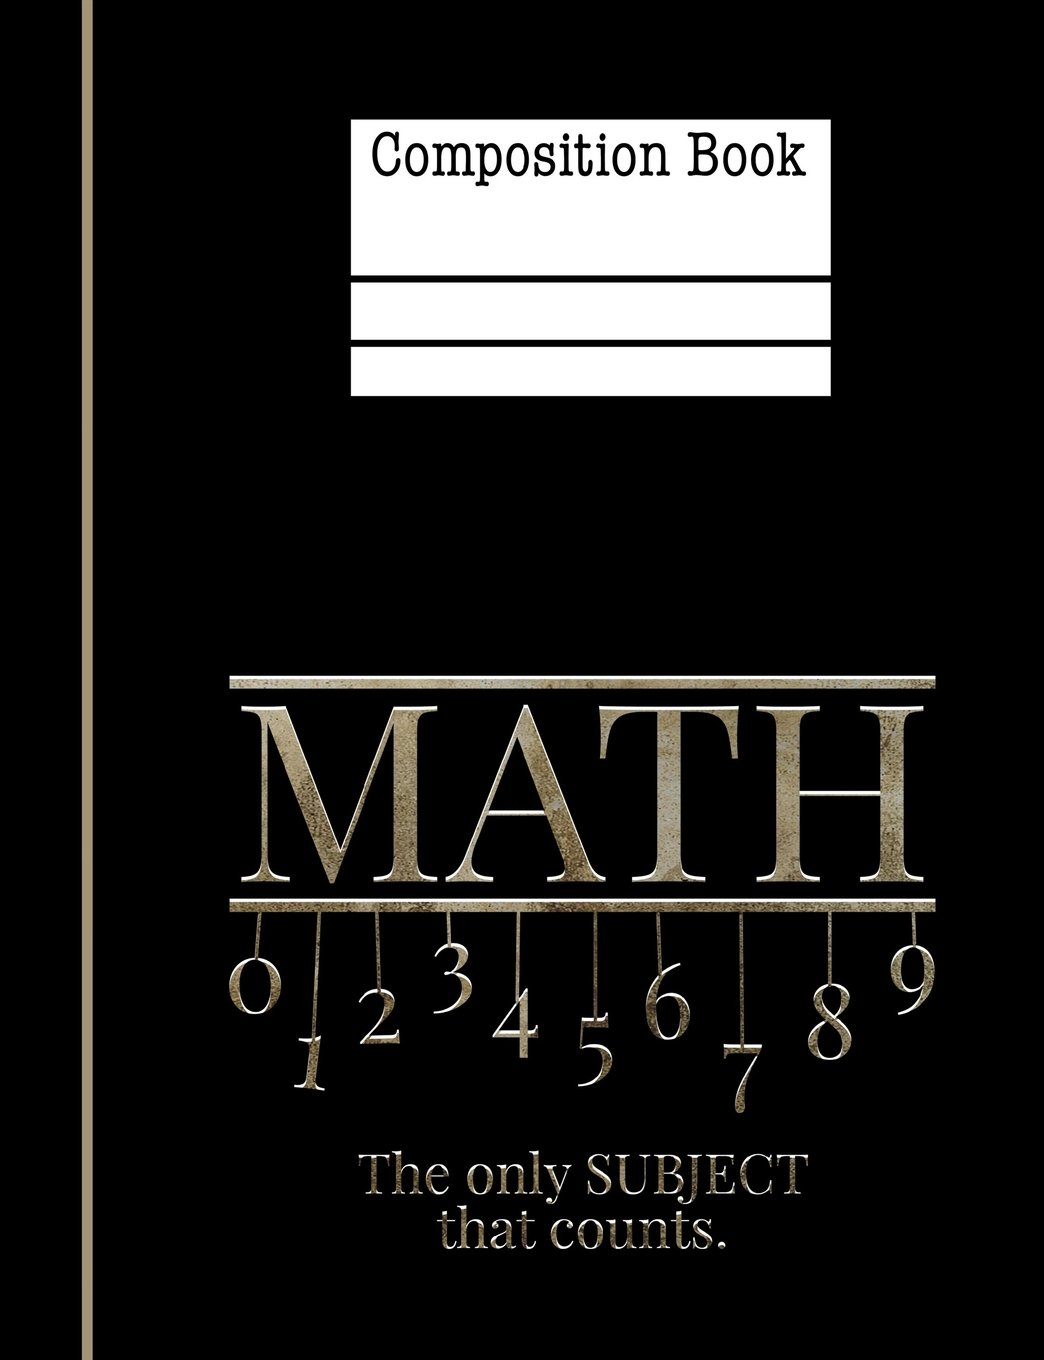 Math The Only Subject That Counts Composition Notebook - Hexagonal 0.5 Inch: 7.44 x 9.69 - 200 Pages - 1/2 Inch Hexagonal Graph Paper - School Student Teacher Office ebook